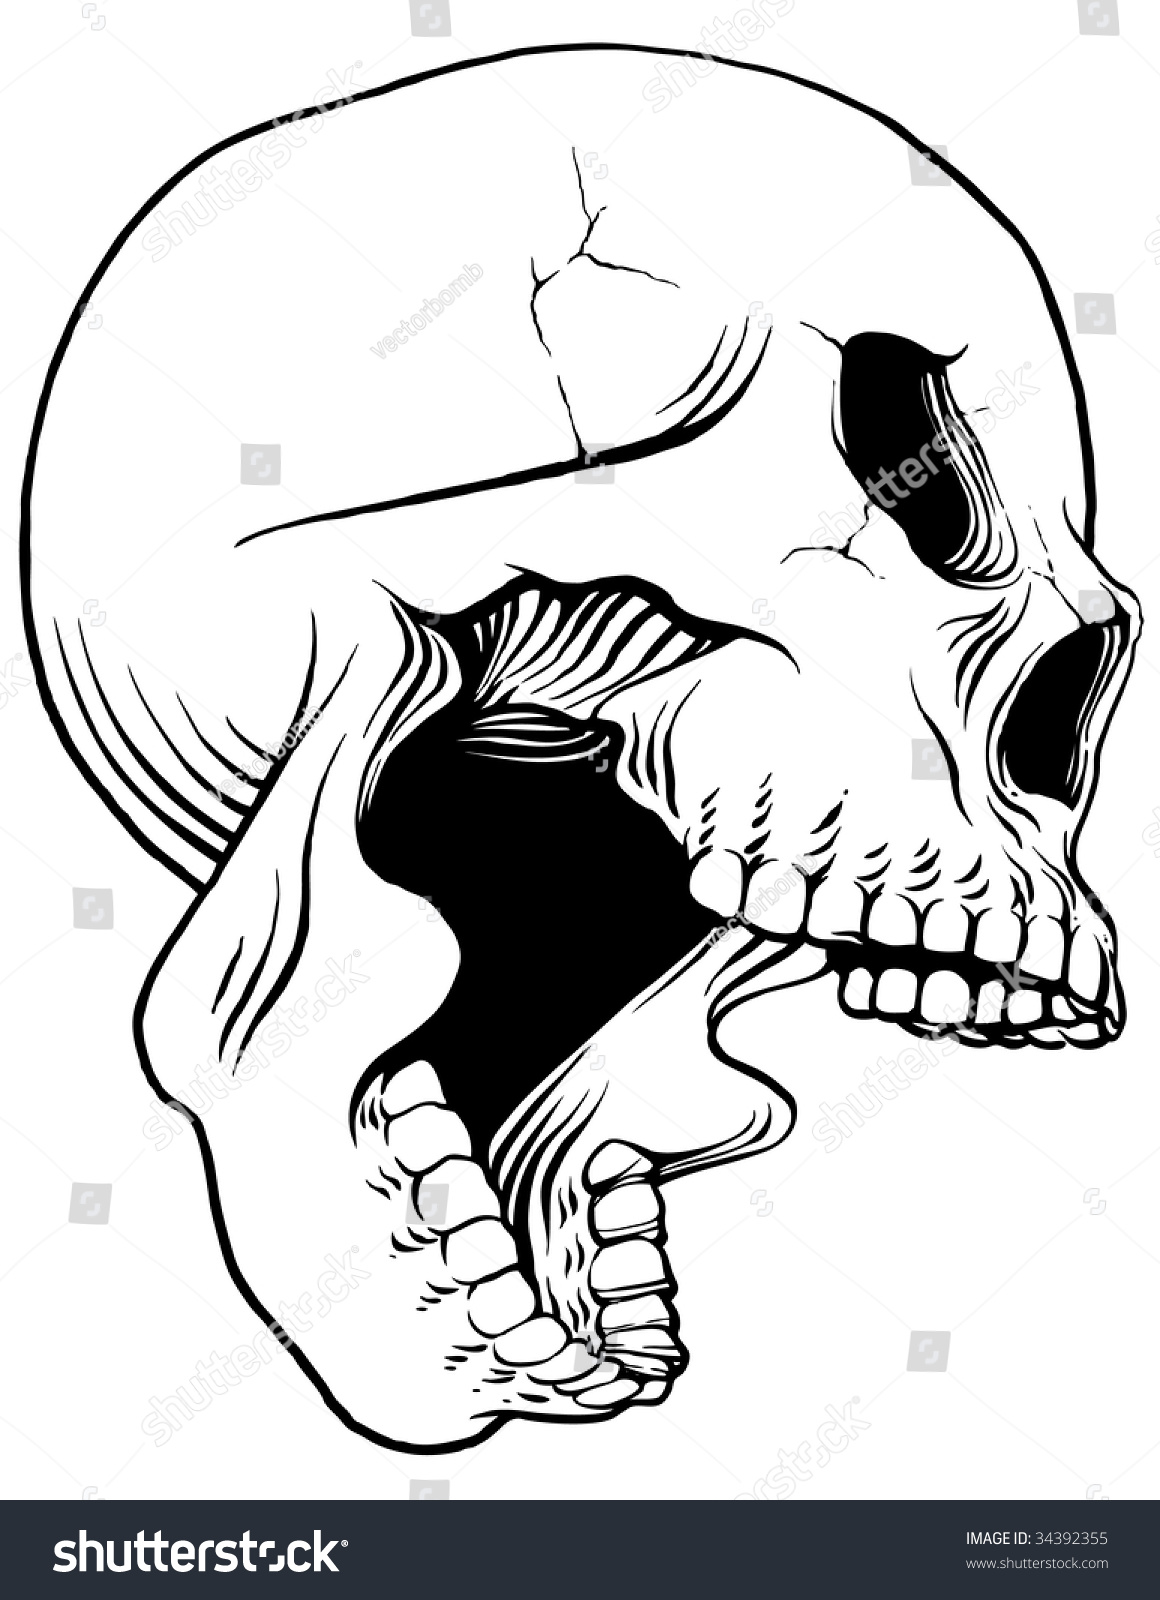 It is an image of Gutsy Side View Open Mouth Drawing